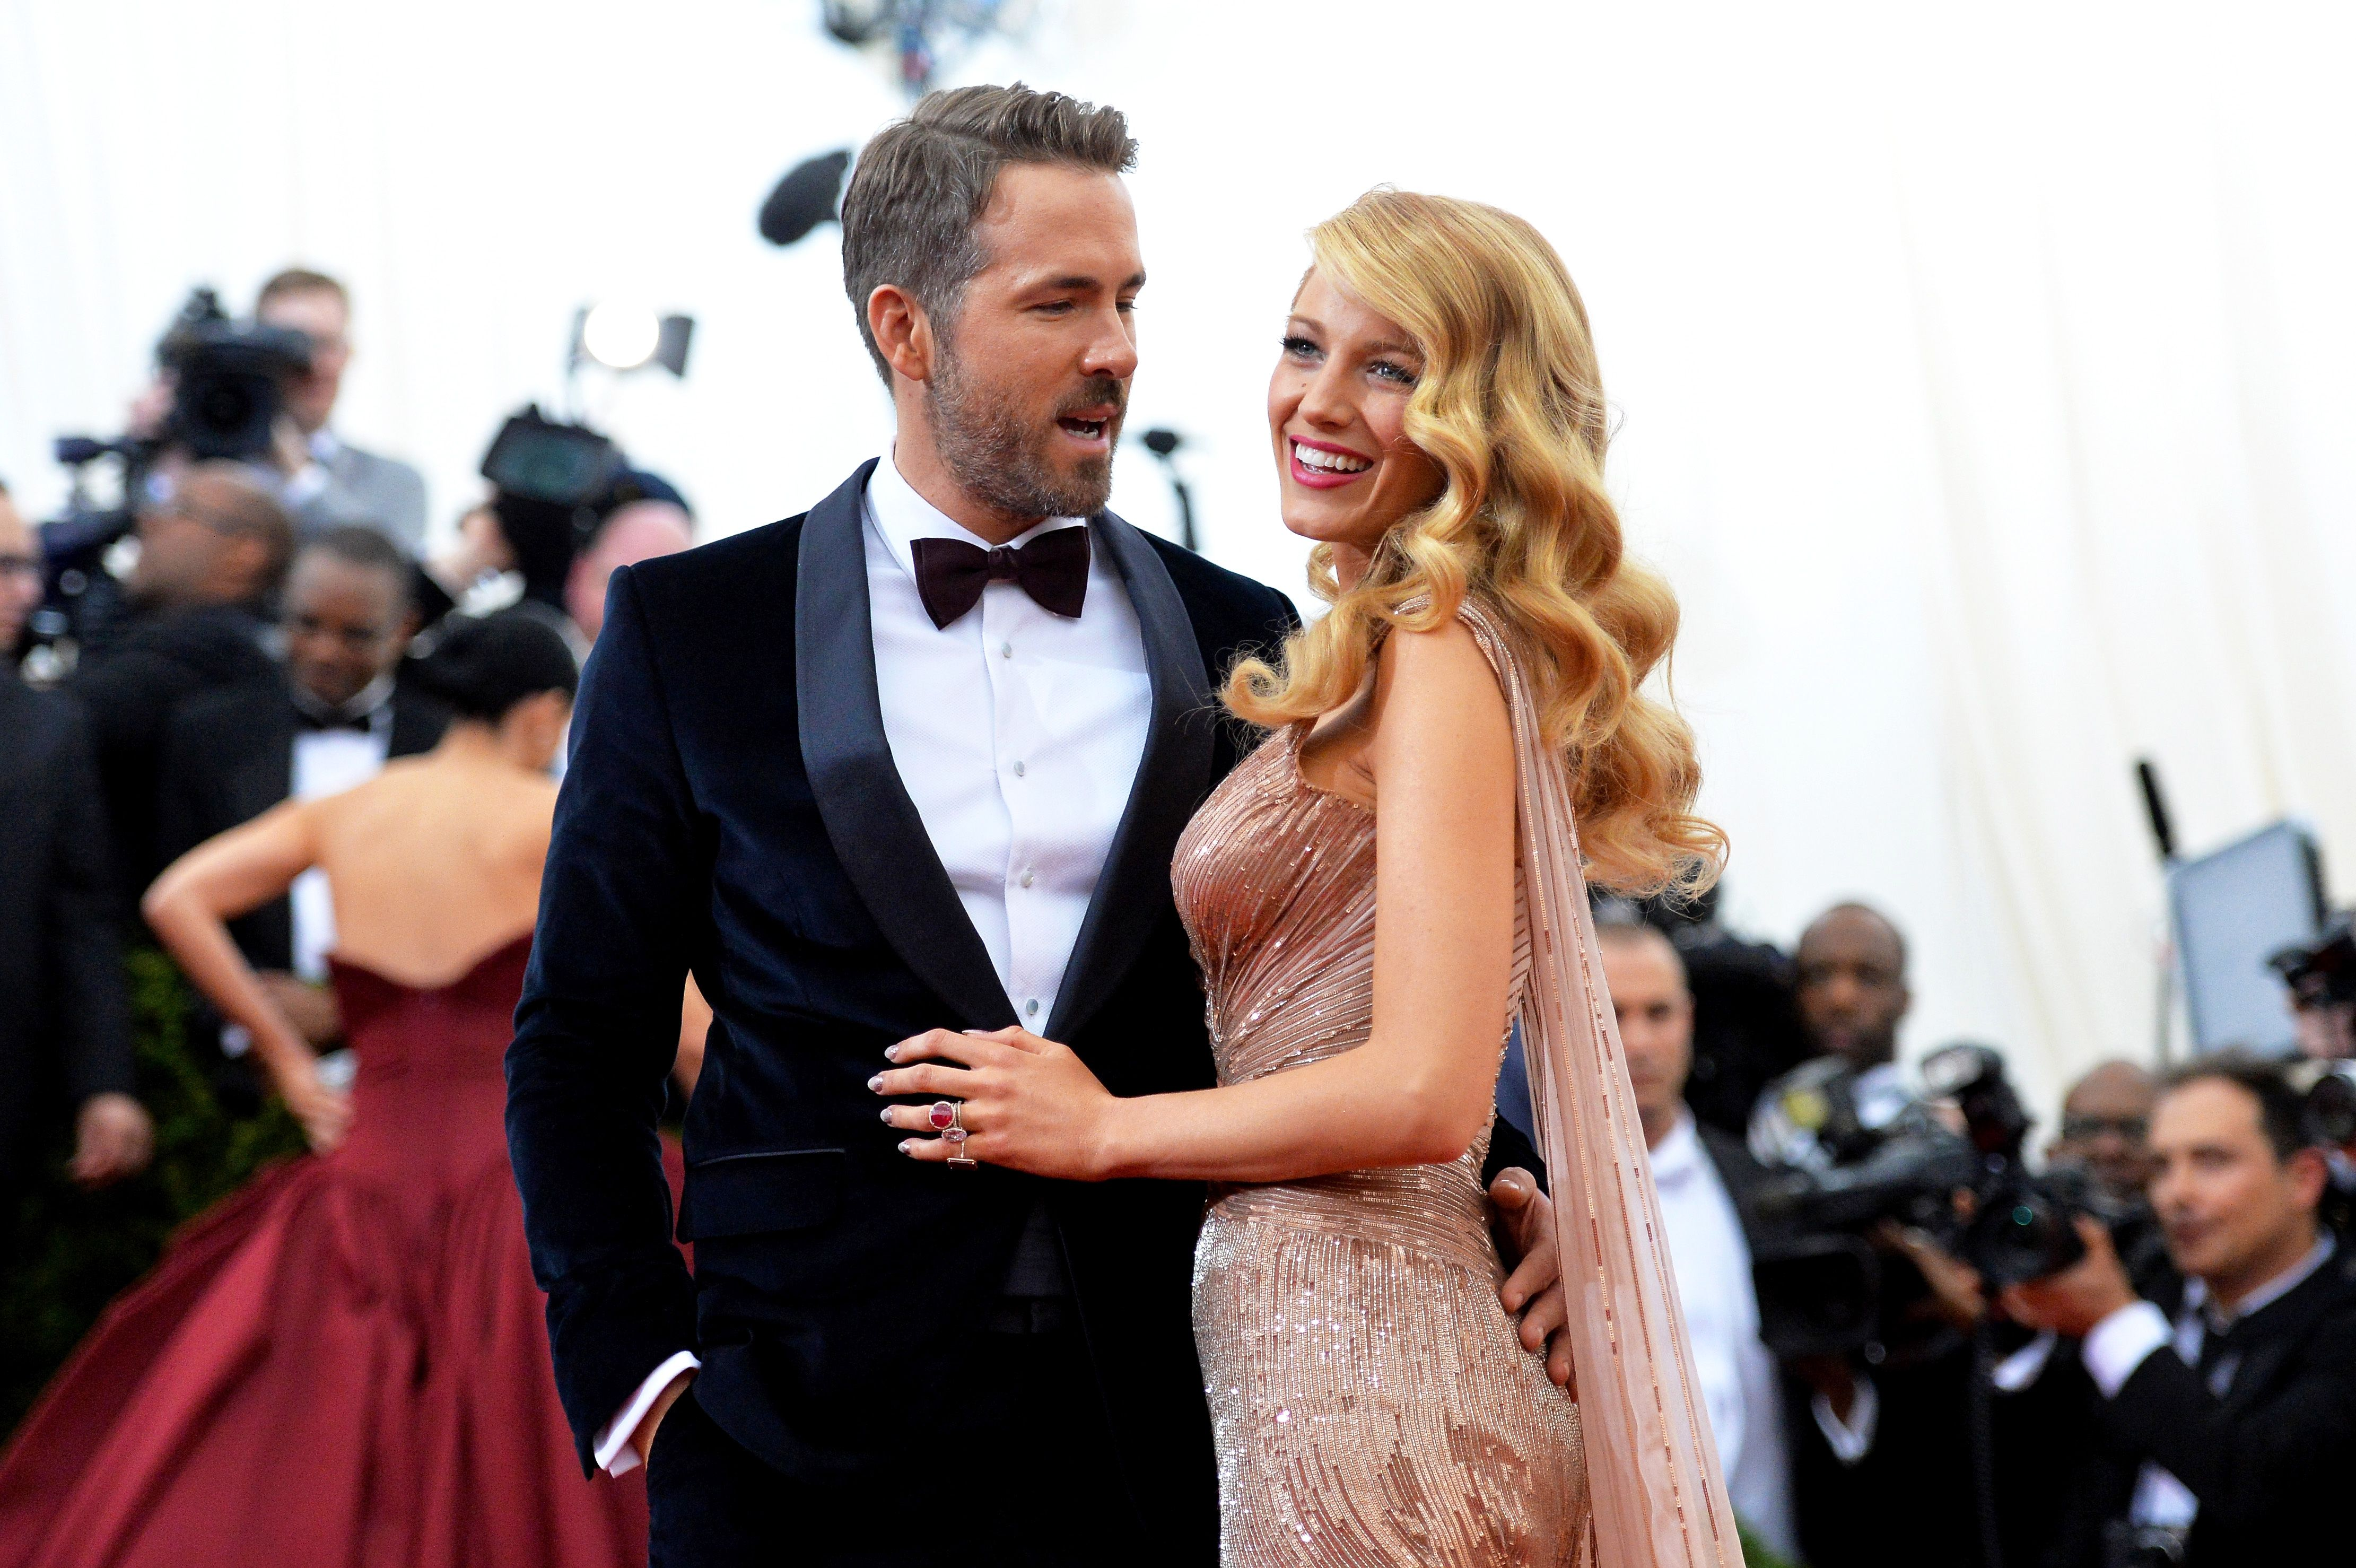 Blake Lively Ended Her Instagram Hiatus Just to Publicly Flirt With Ryan Reynolds